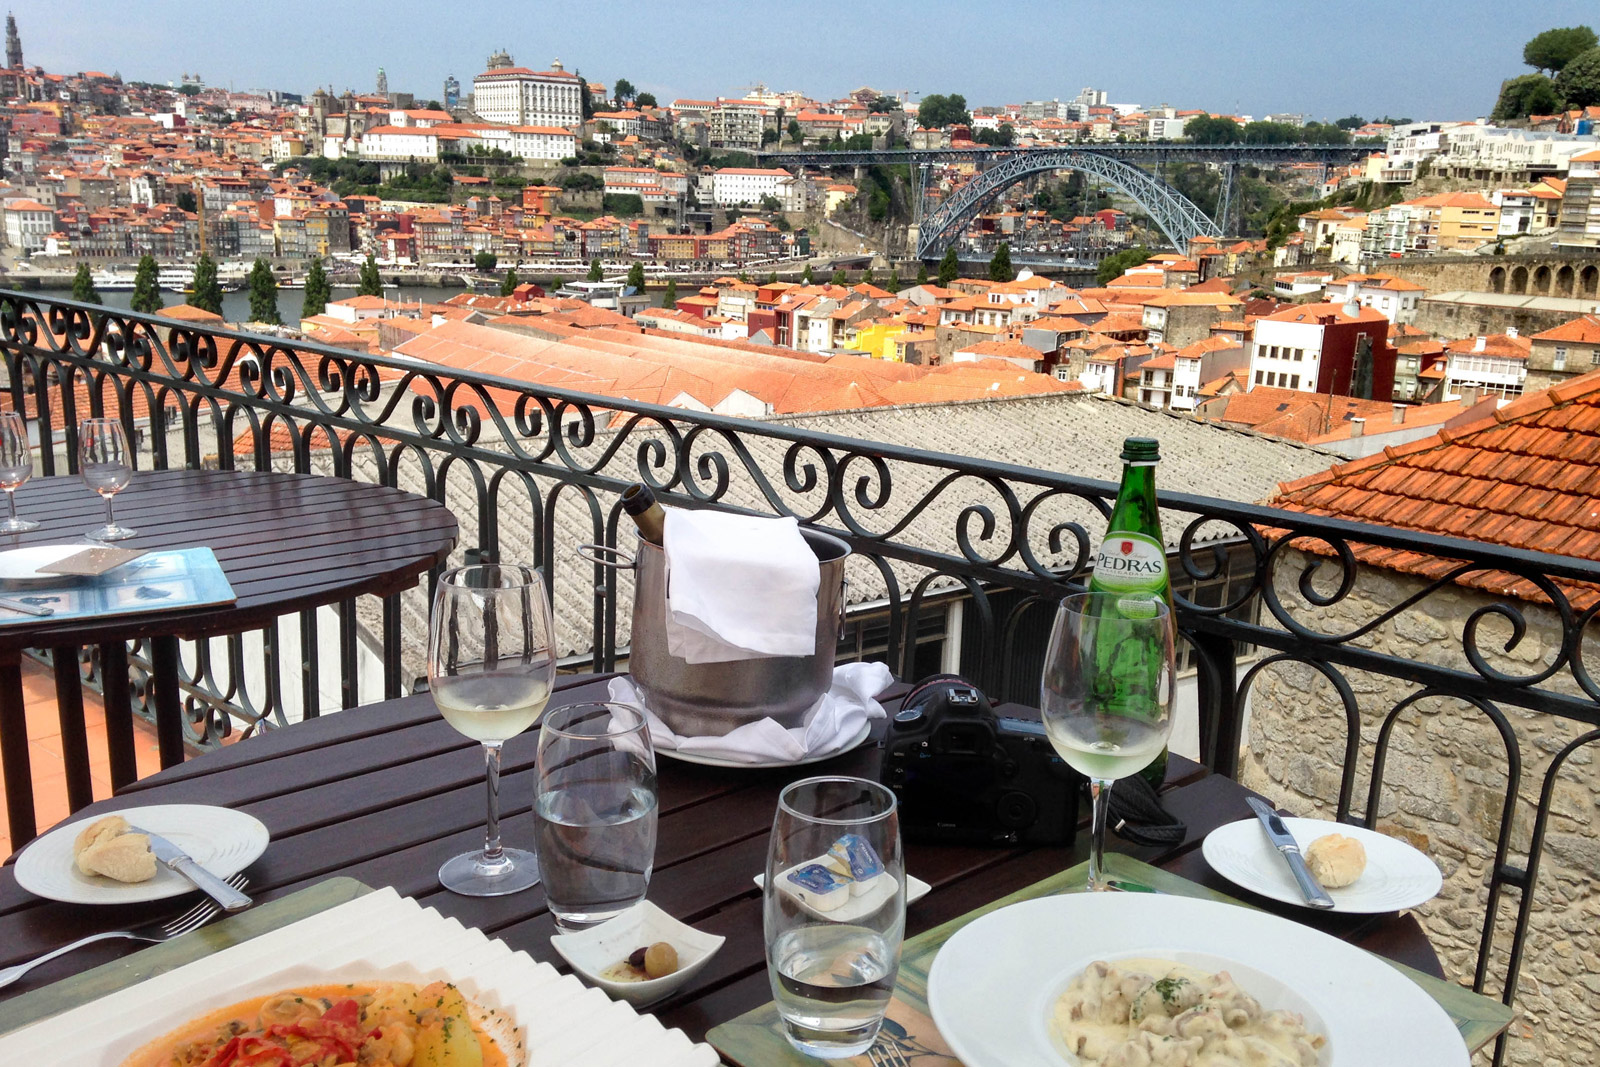 Lunch on a rooftop terrace overlooking Porto